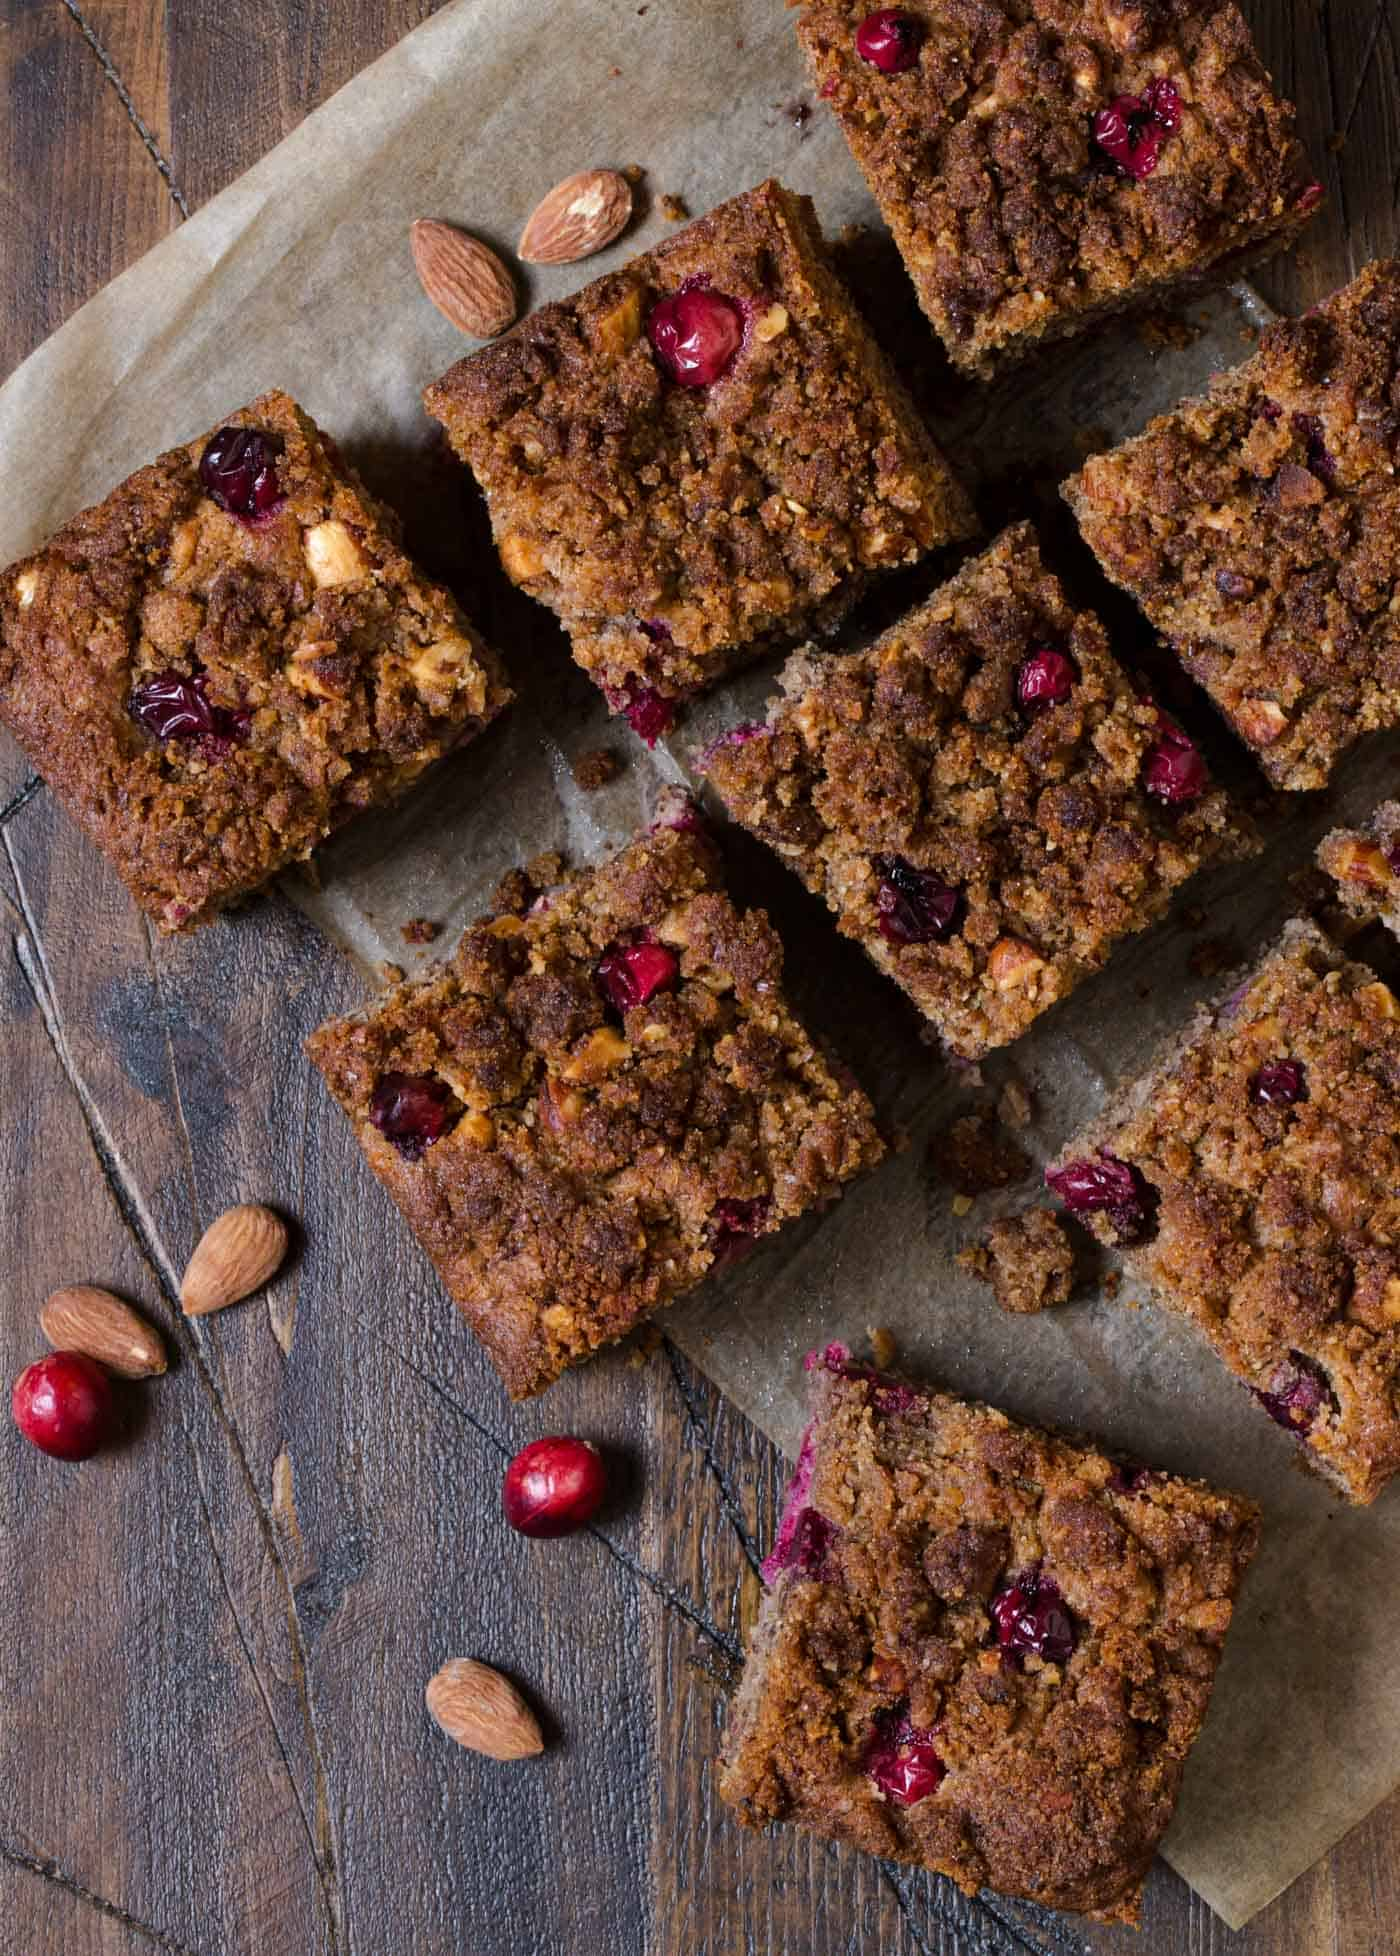 Pin this easy Gluten-Free Cranberry Nut Coffee Cake and add it to your holiday brunch menus. No one will guess it is gluten-free!